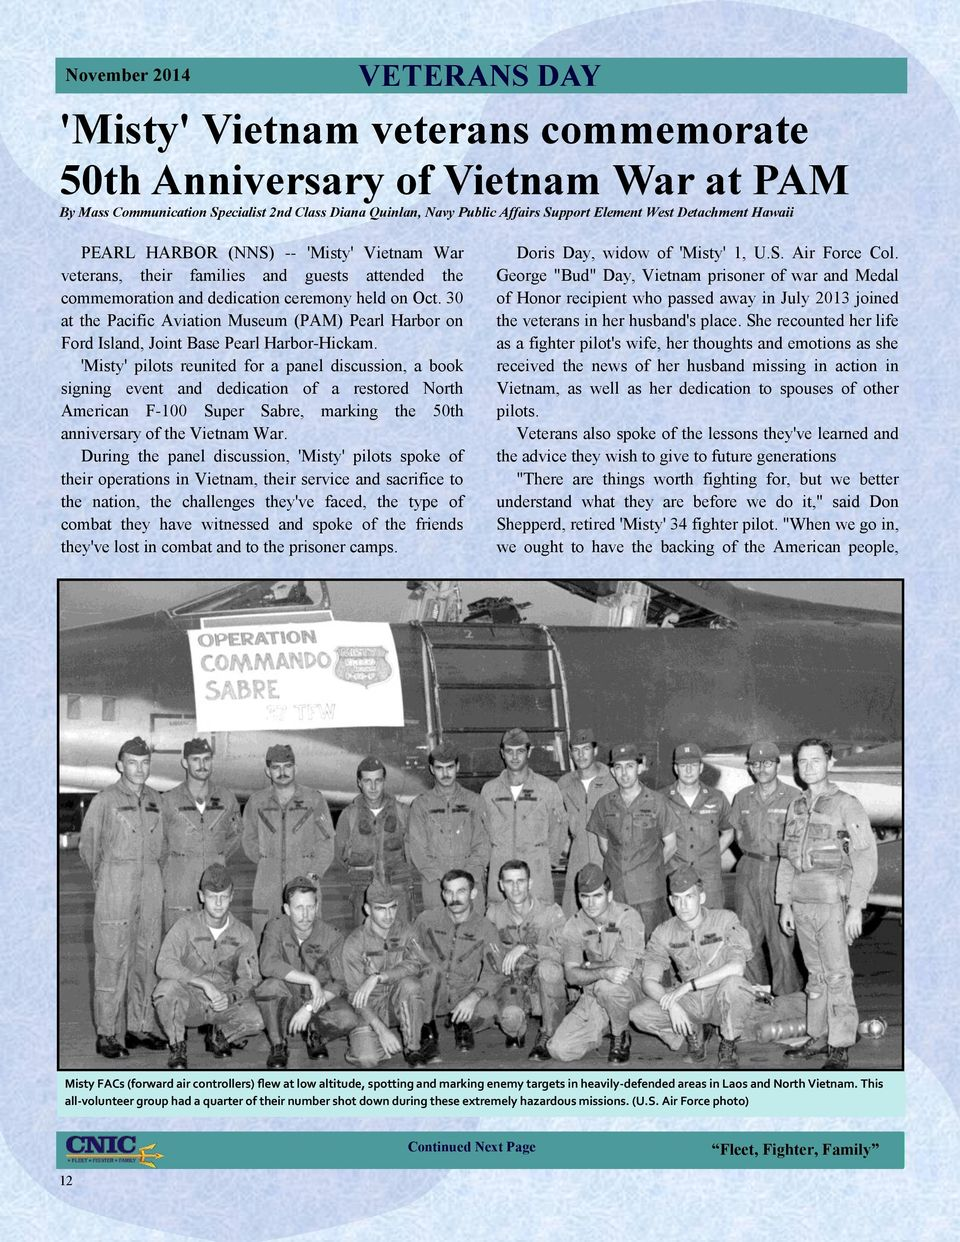 30 at the Pacific Aviation Museum (PAM) Pearl Harbor on Ford Island, Joint Base Pearl Harbor-Hickam.